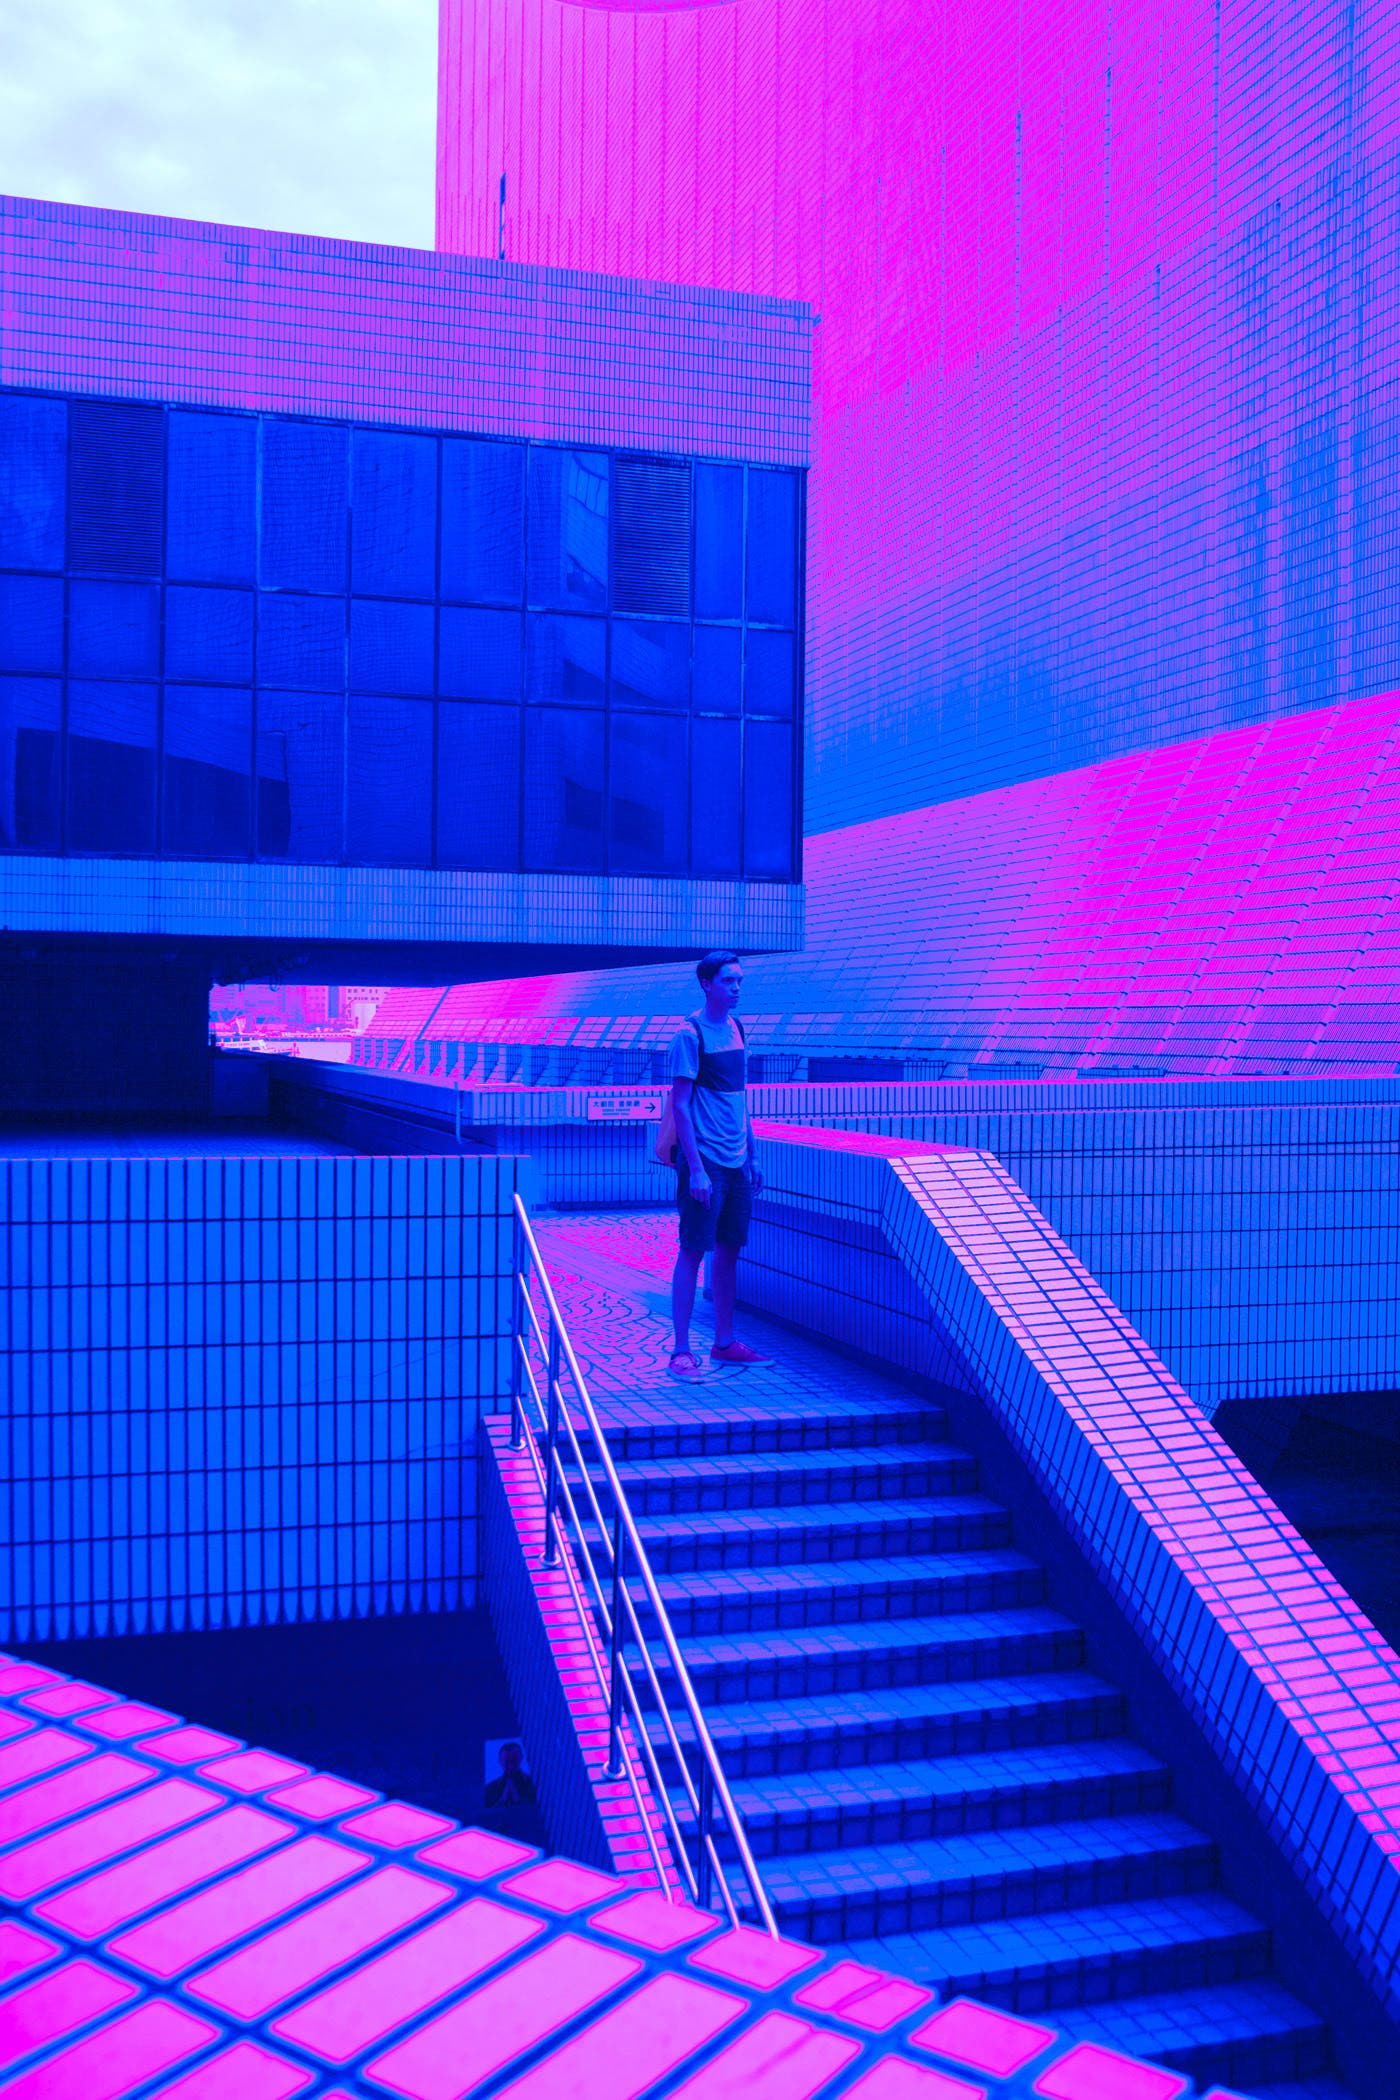 Ekaterina Busygina Imagines the Urban Geometry of Hong Kong in Neon